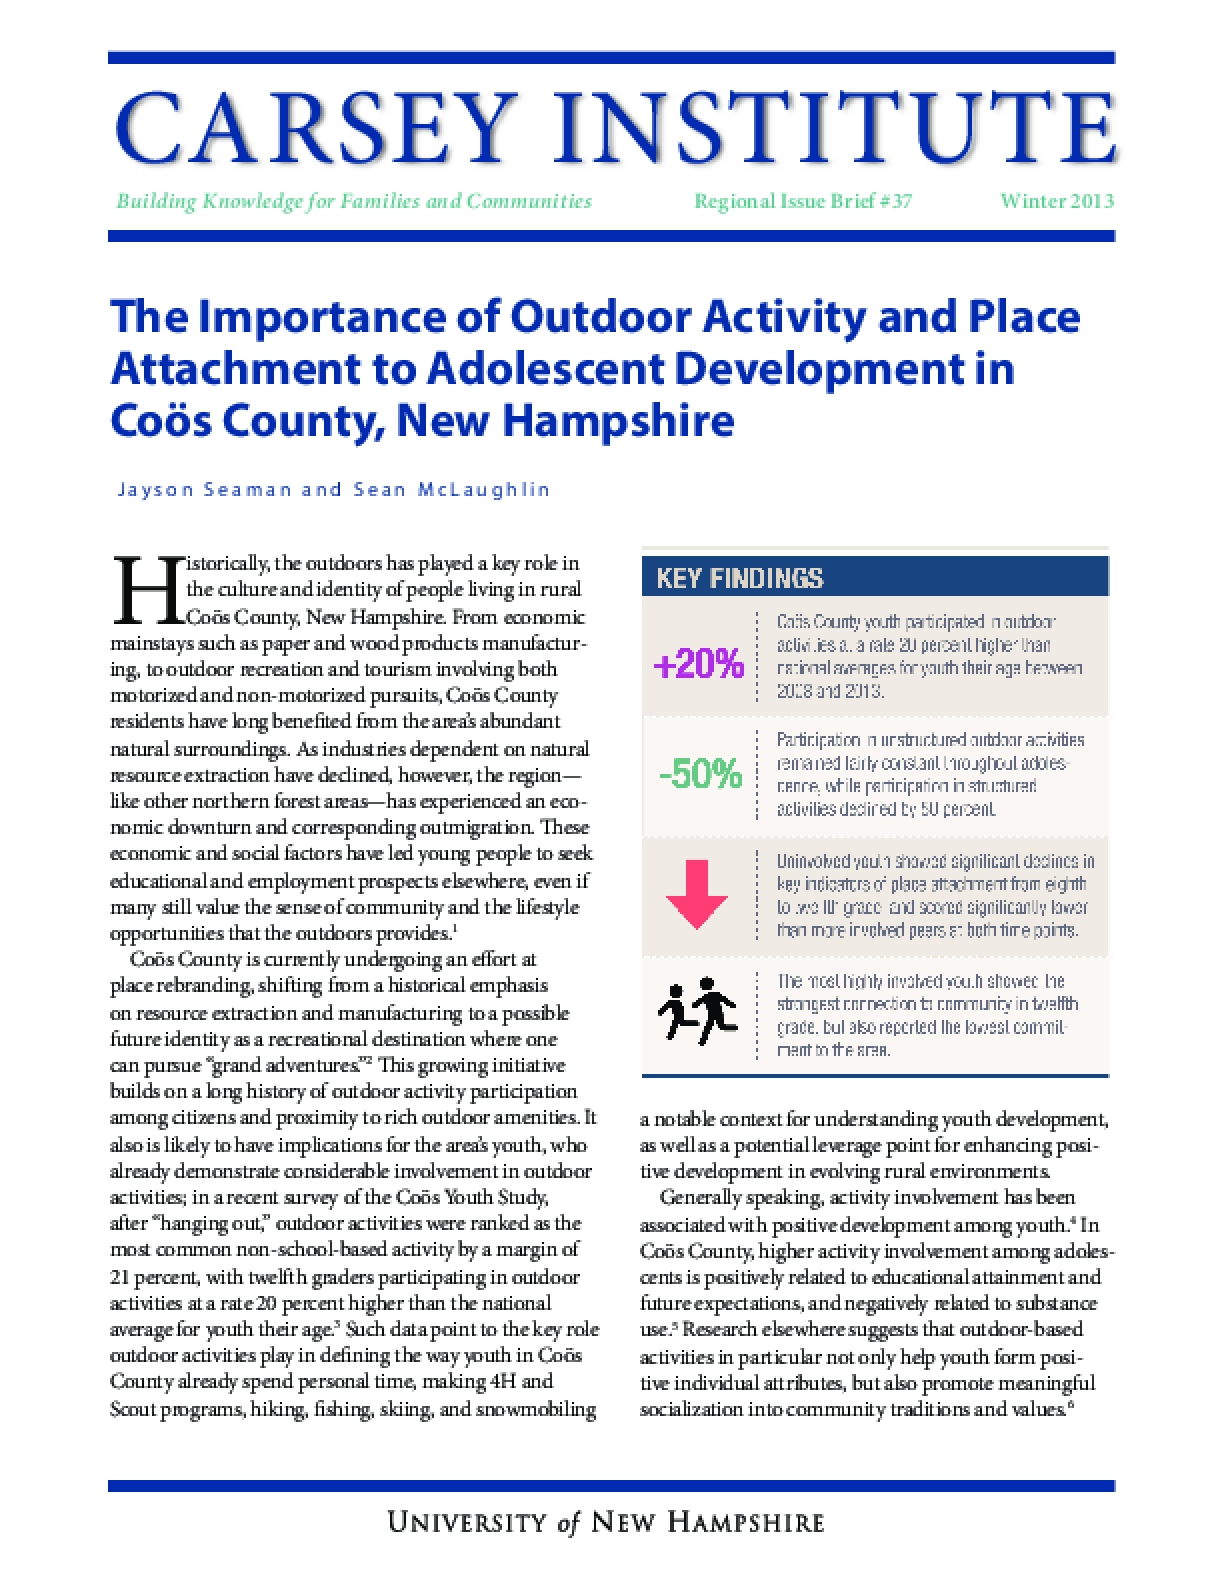 The Importance of Outdoor Activity and Place Attachment to Adolescent Development in Coös County, New Hampshire